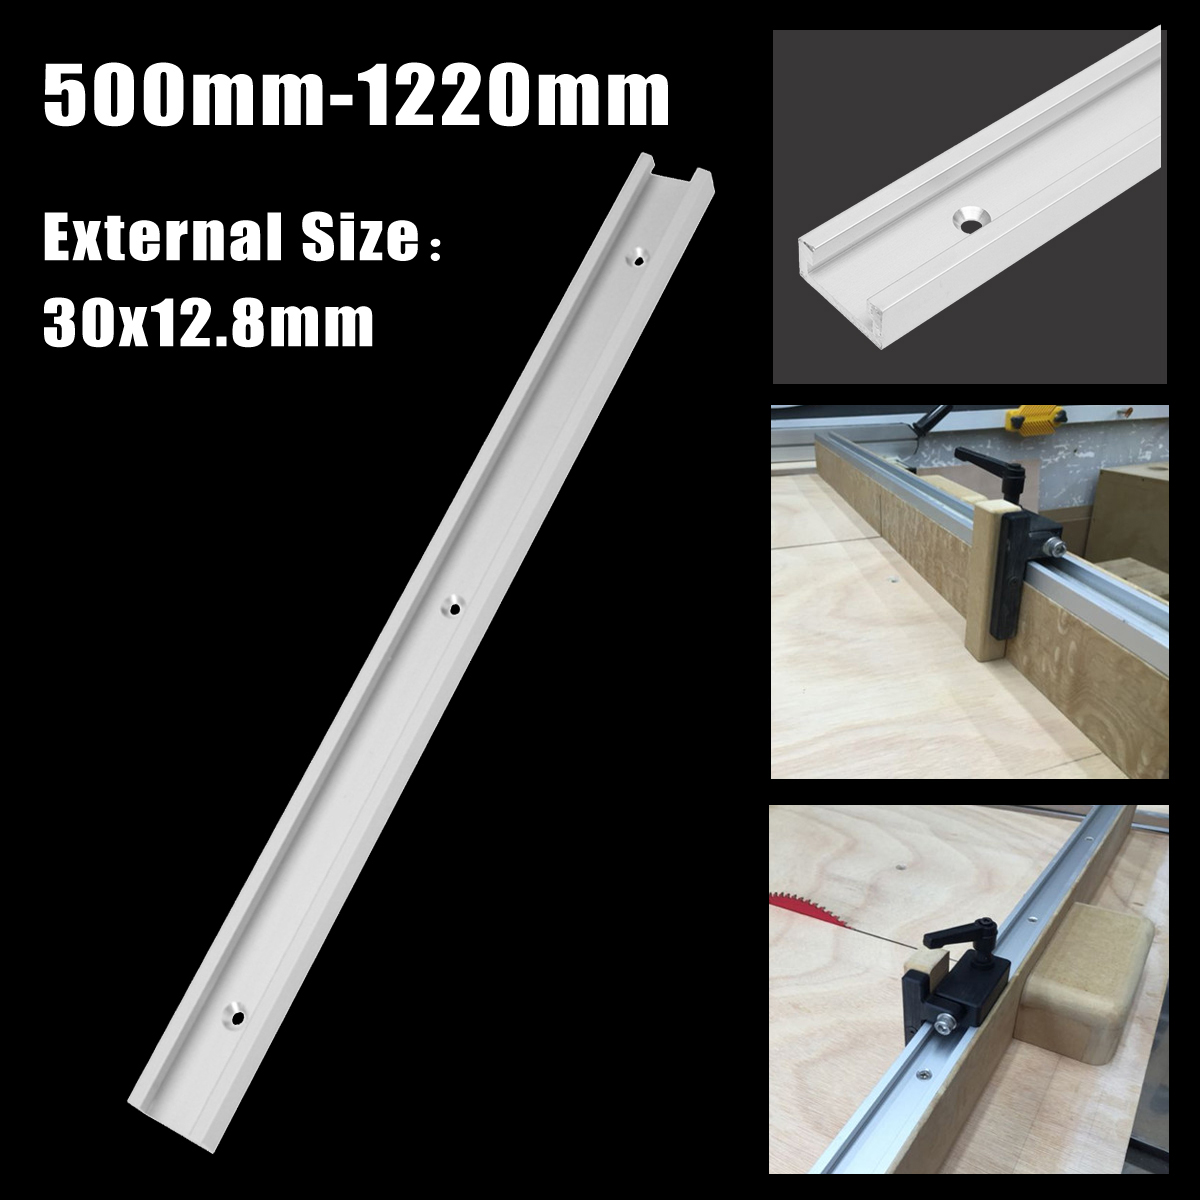 500mm-1220mm T-track T-slot Miter Track Aluminium Alloy Jig Fixture Slot for Router Table Woodworking Tool 2pcs t tracks t slot miter track jig fixture slot for router table band saw t tracks length 300 400 600 800mm kf713